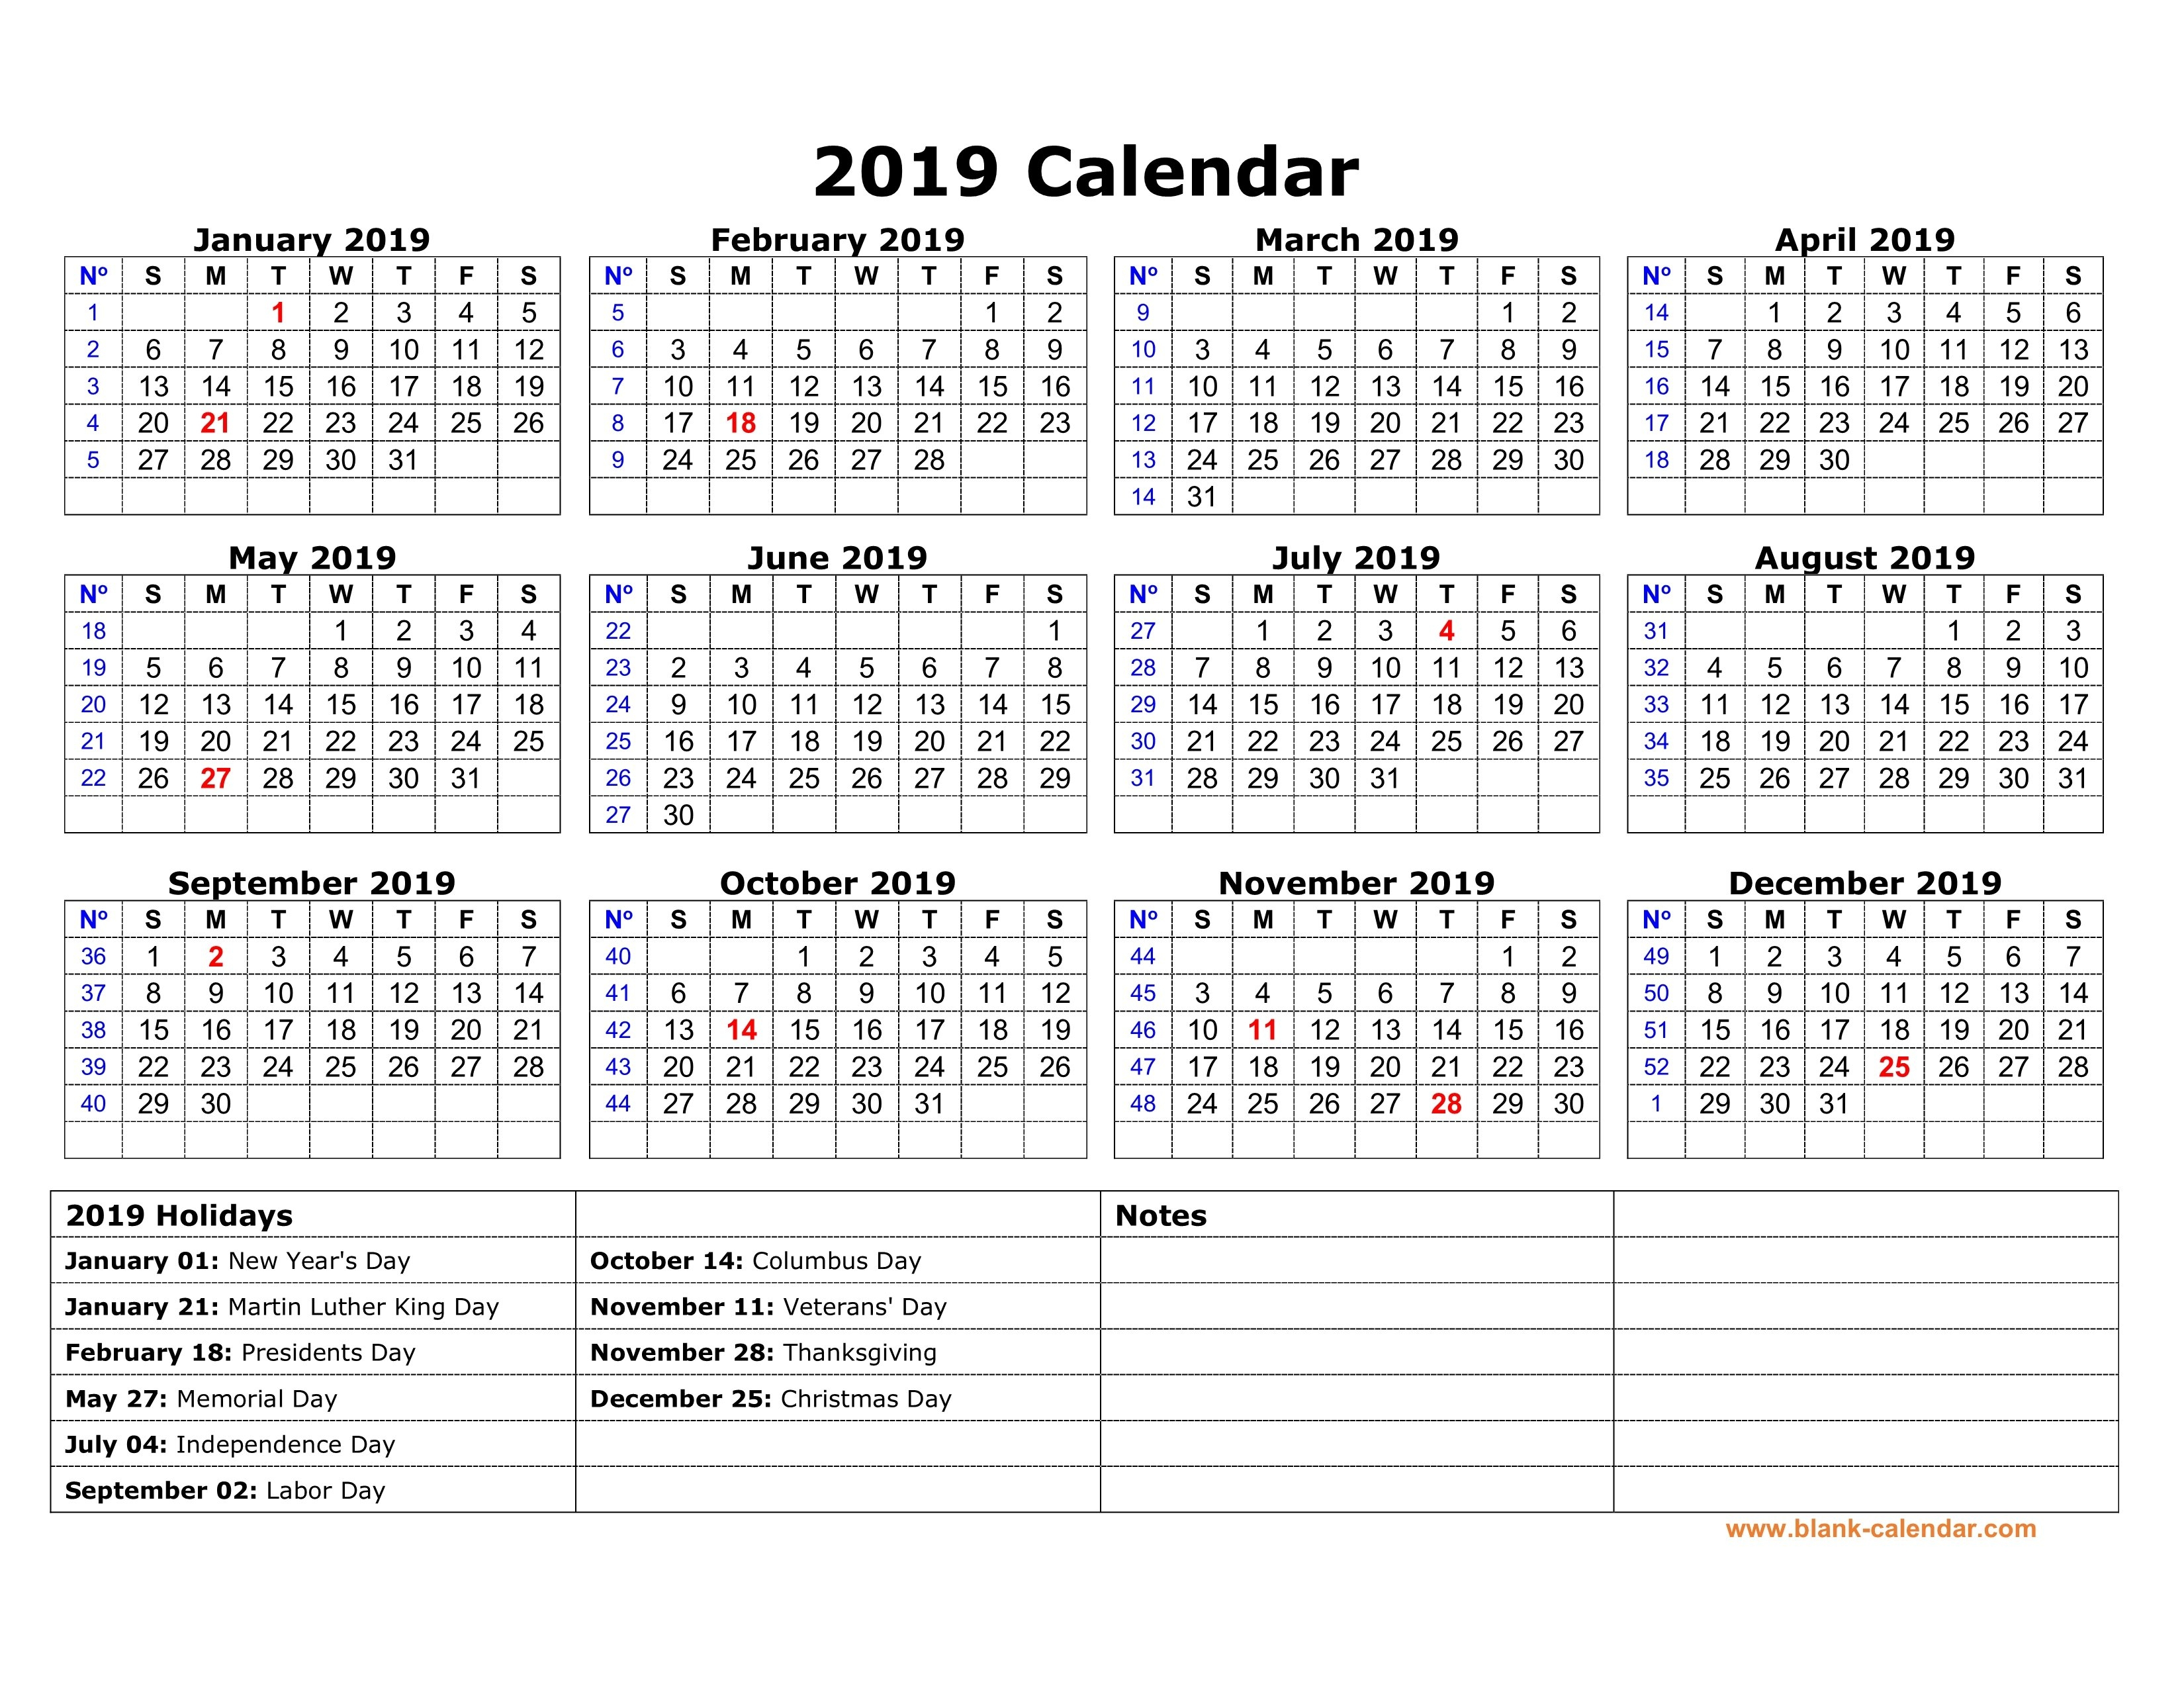 Free Download Printable Calendar 2019 With Us Federal Holidays, One Calendar 2019 With Us Holidays